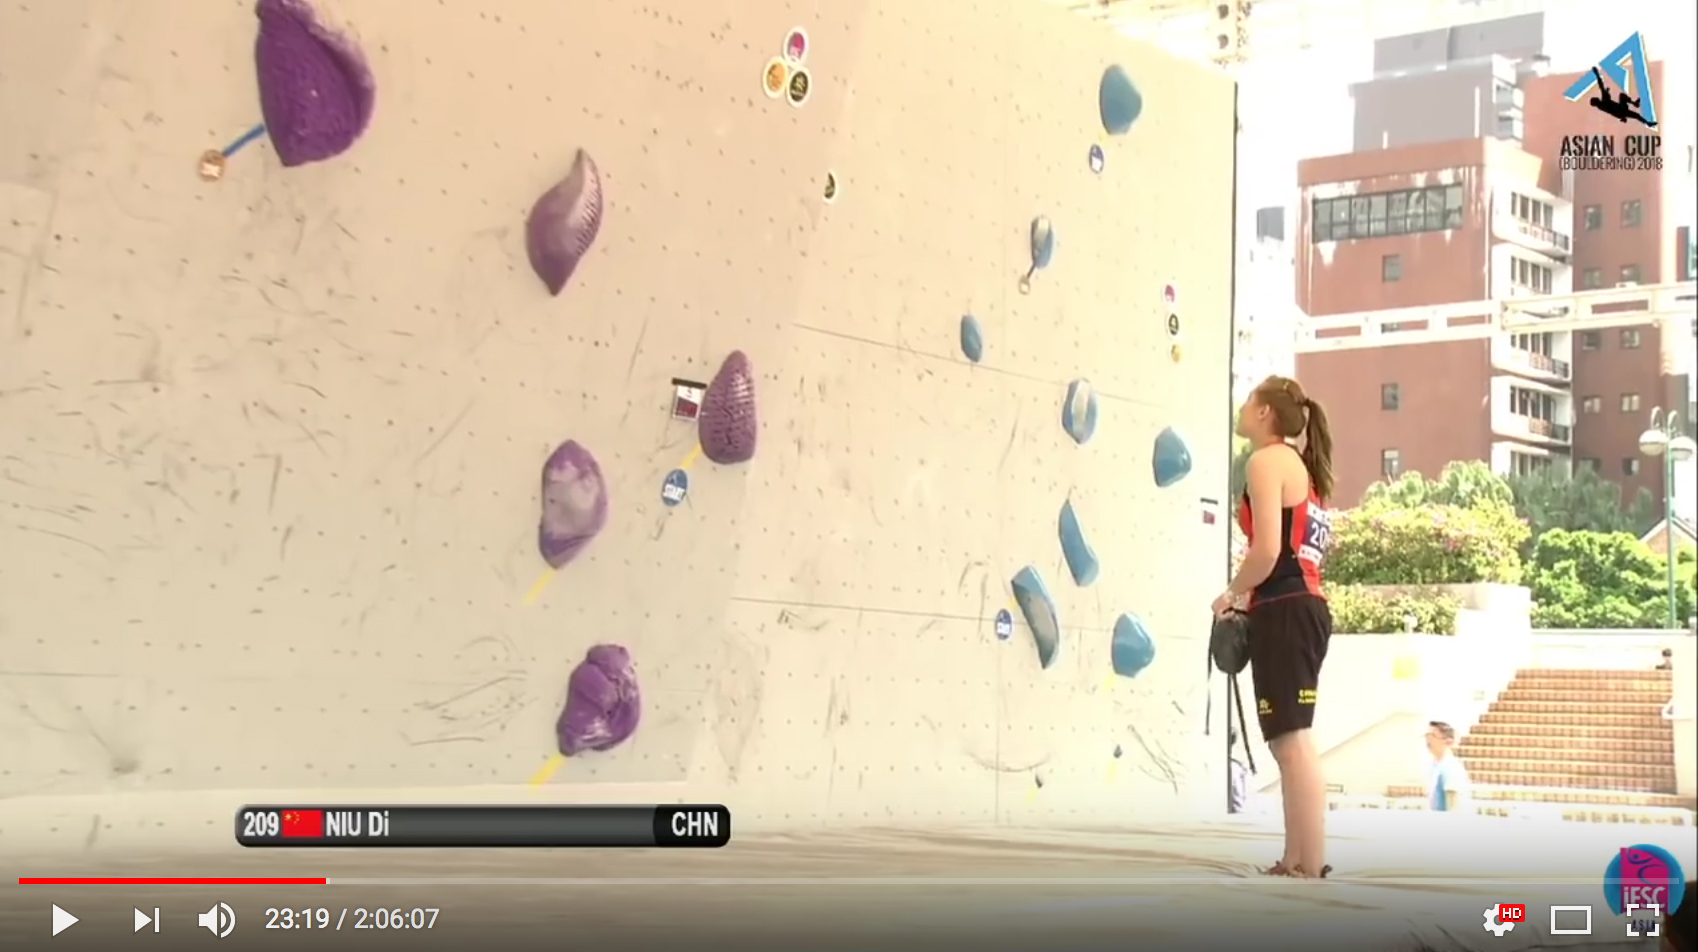 Asian Cup Bouldering 2018